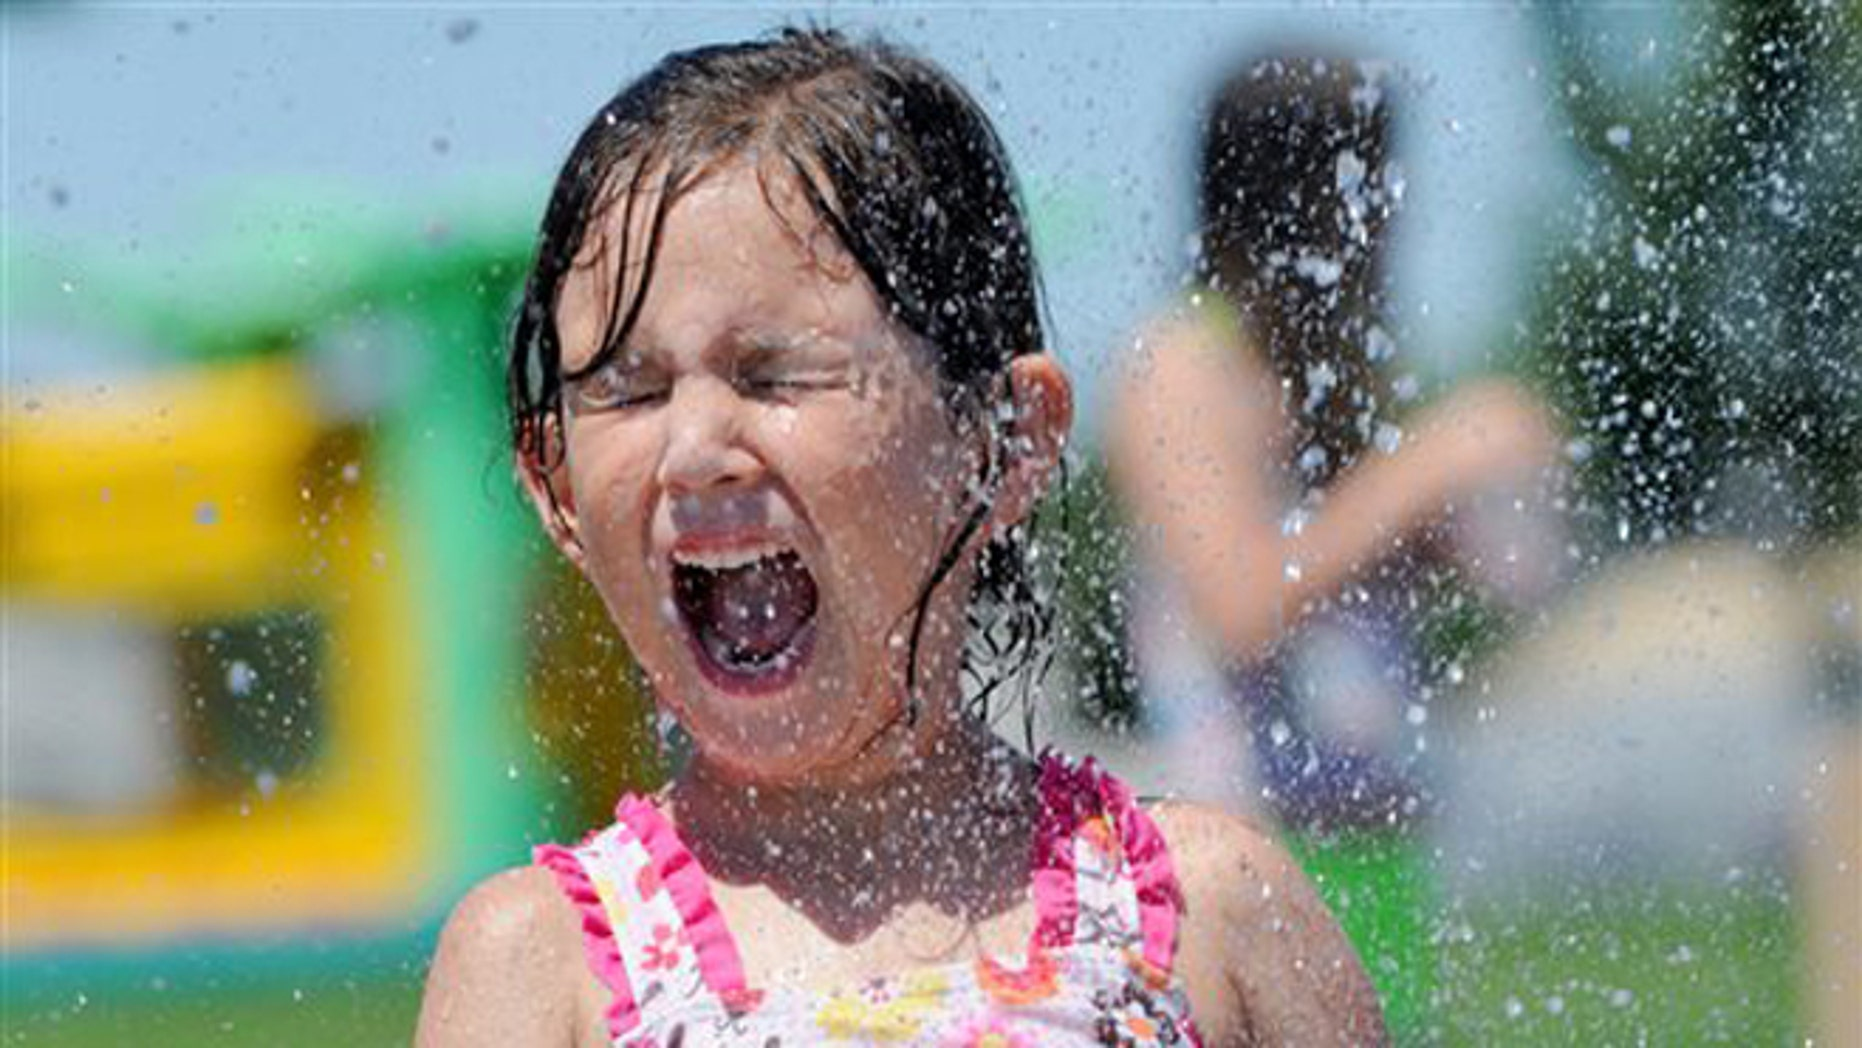 Kayla Holdridge, 6, of Eagle, is sprayed with water at Settlers Park Friday, June 28, 2013 in Meridian, Idaho. Many people looked for ways to beat the heat as temperatures in the Treasure Valley soared into the triple digits. (AP Photo/The Idaho Press-Tribune, Adam Eschbach)